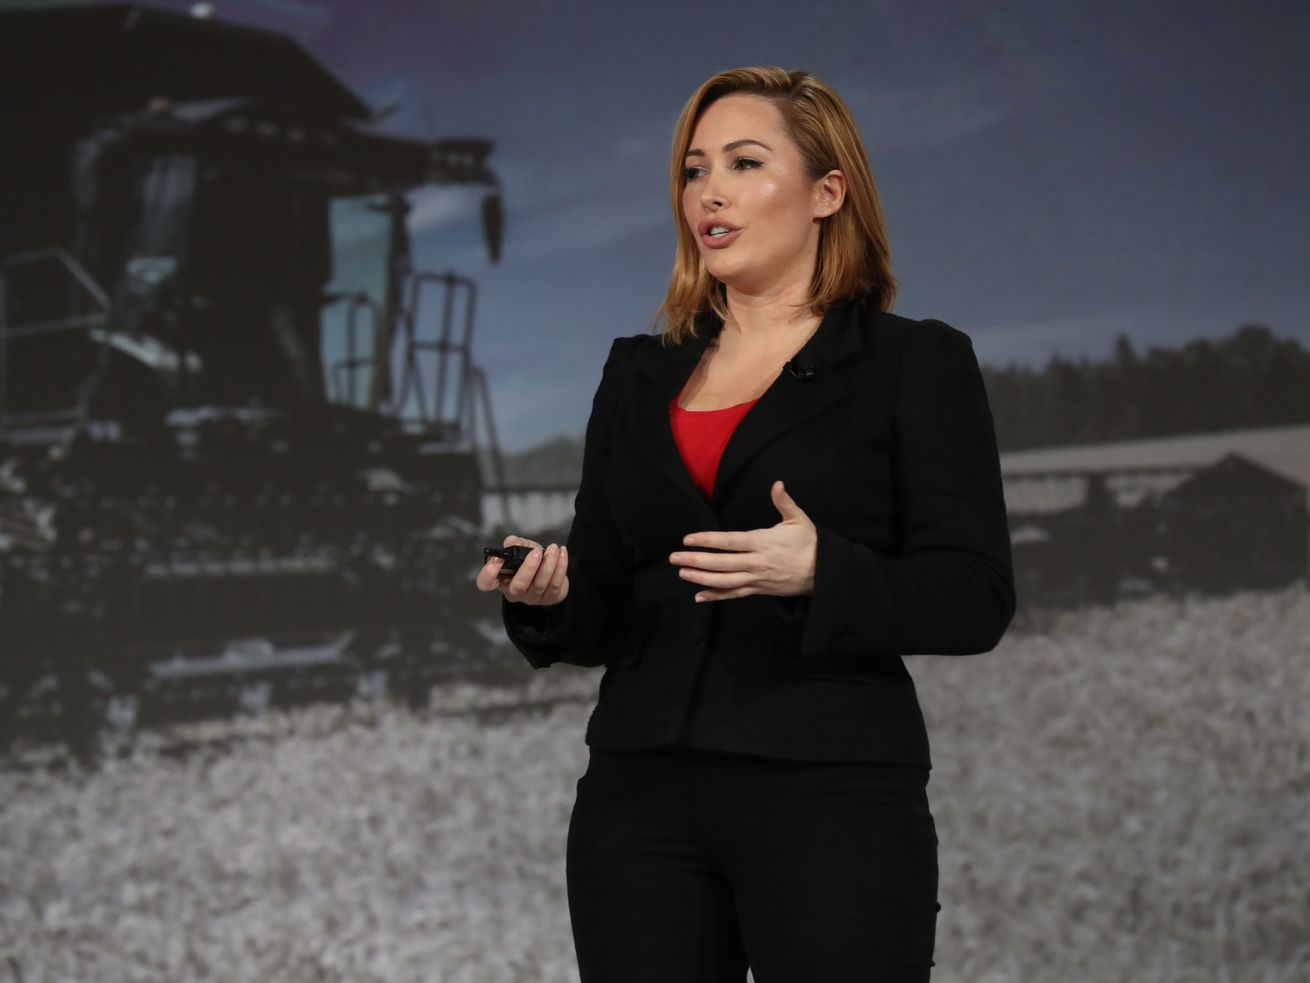 The Carbon Robotics CEO says robots will be today's combine harvester